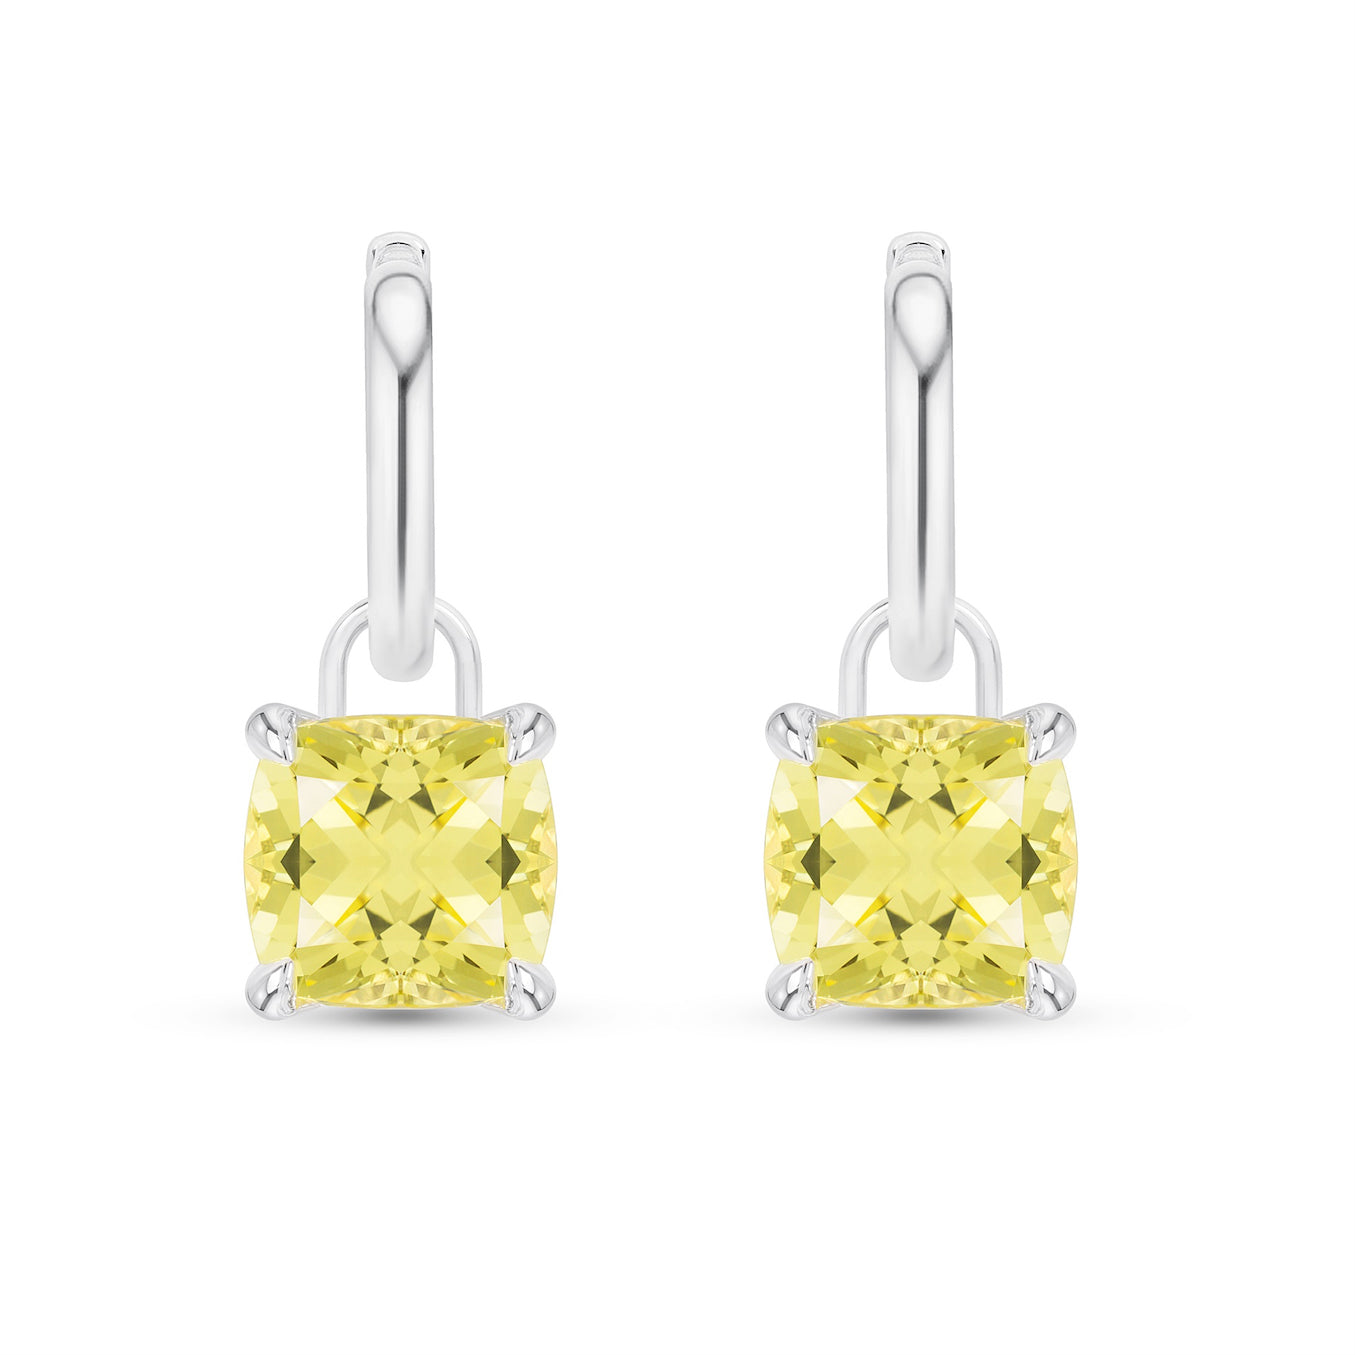 value sapphire lc shop stone meaning yellow jewelry education earrings gemstone information